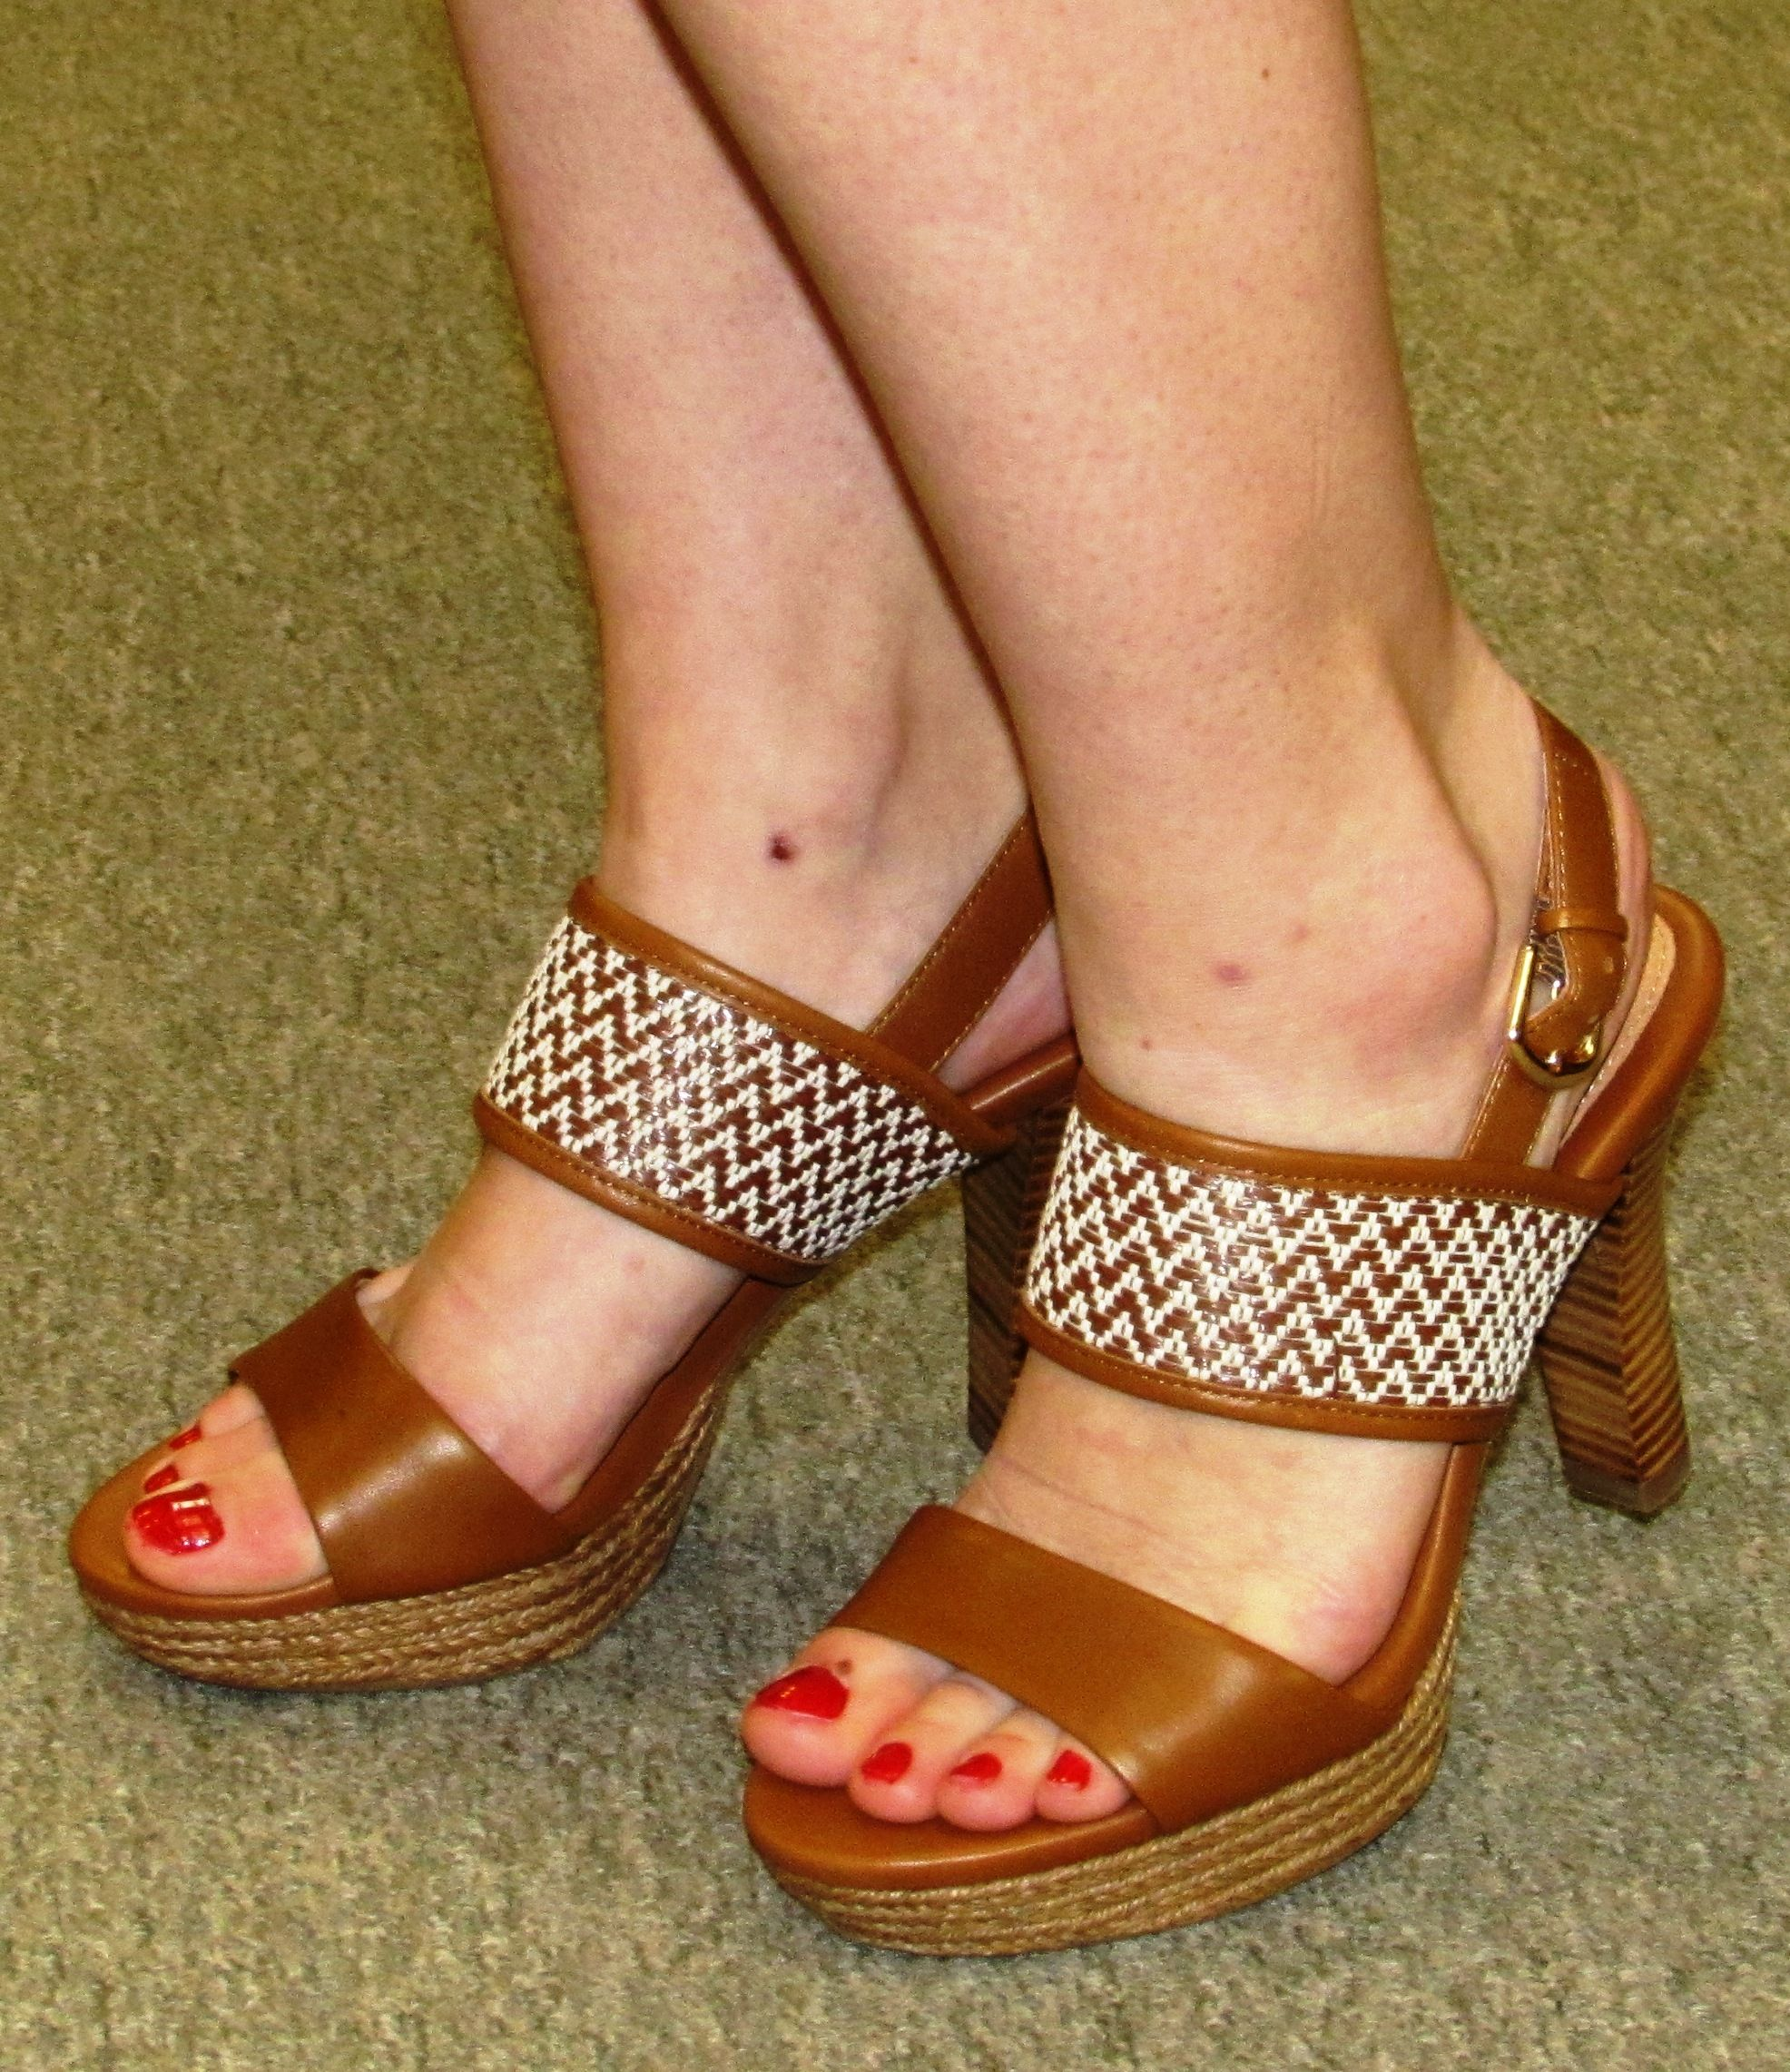 Shoes; Sandals; Slippers; Flat Shoes; High Heels